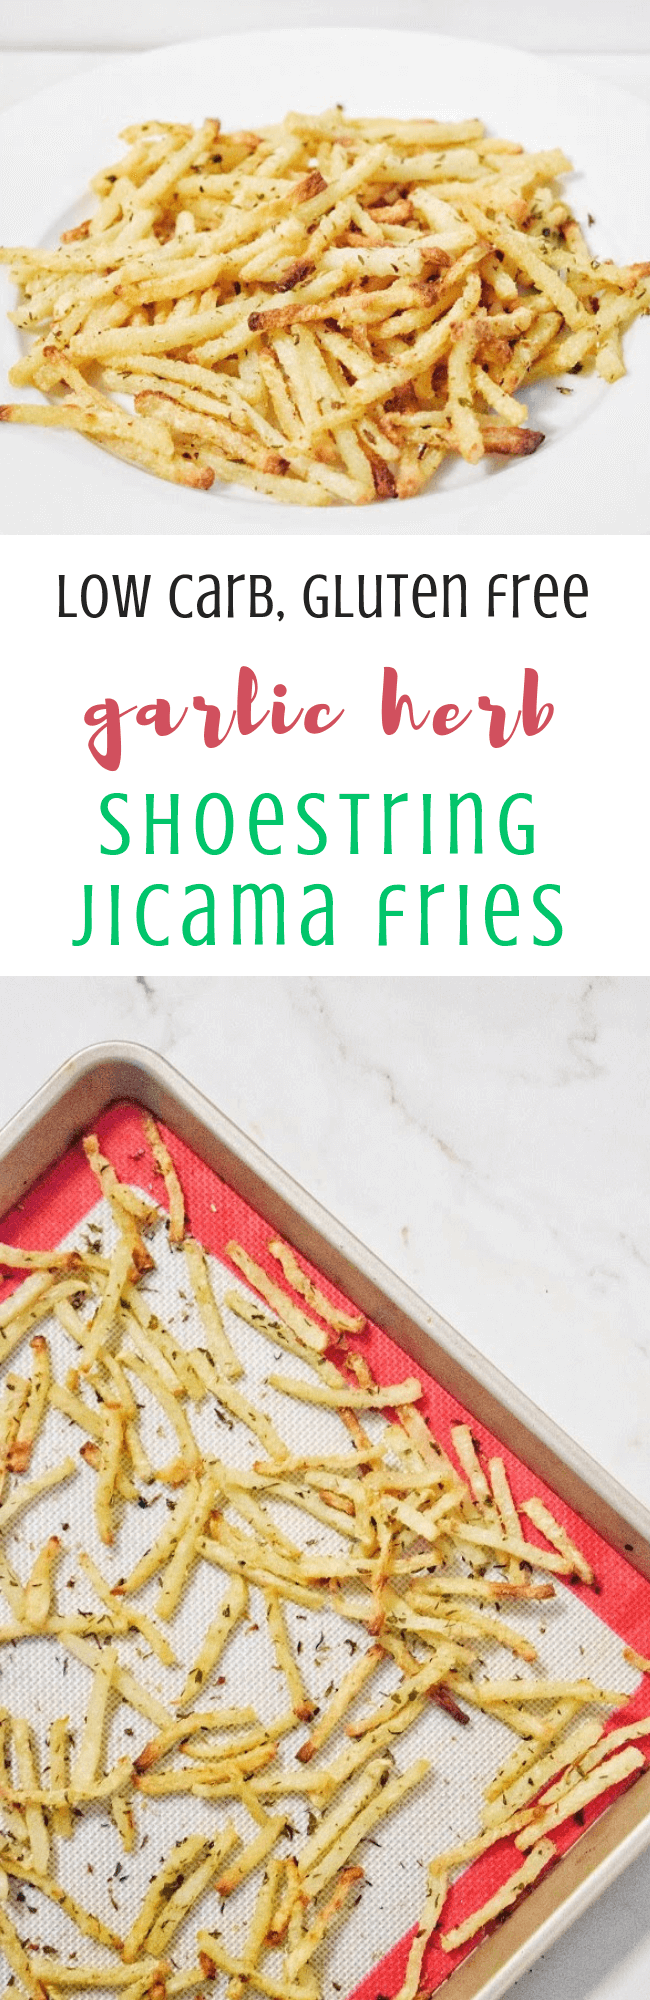 Low Carb Garlic Herb Shoestring Jicama Fries | Personally Paleo